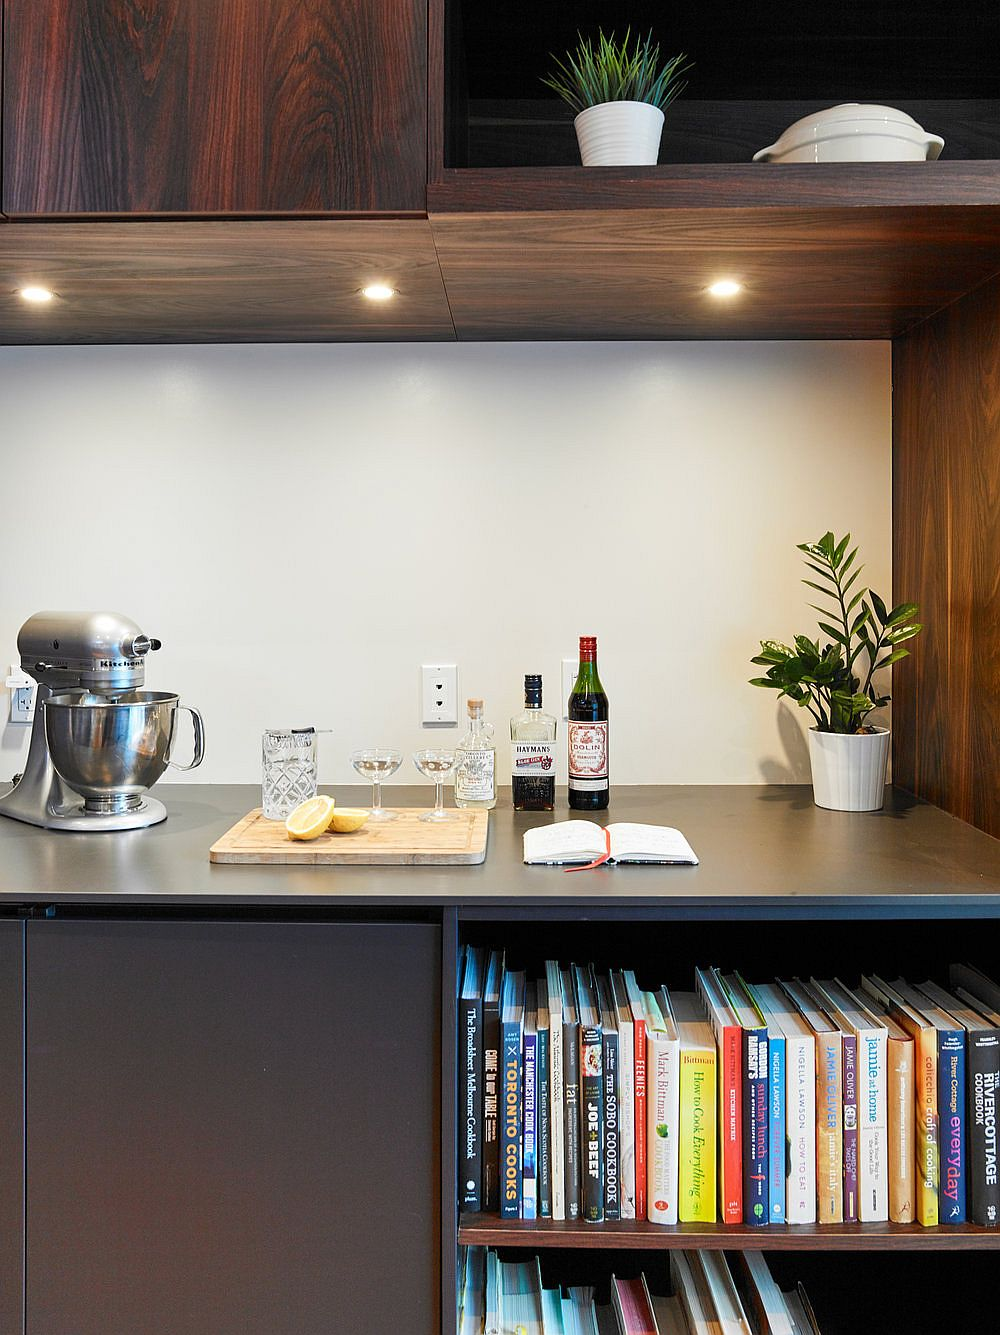 Small-tea-station-in-the-kitchen-with-bookshelf-underneath-10779